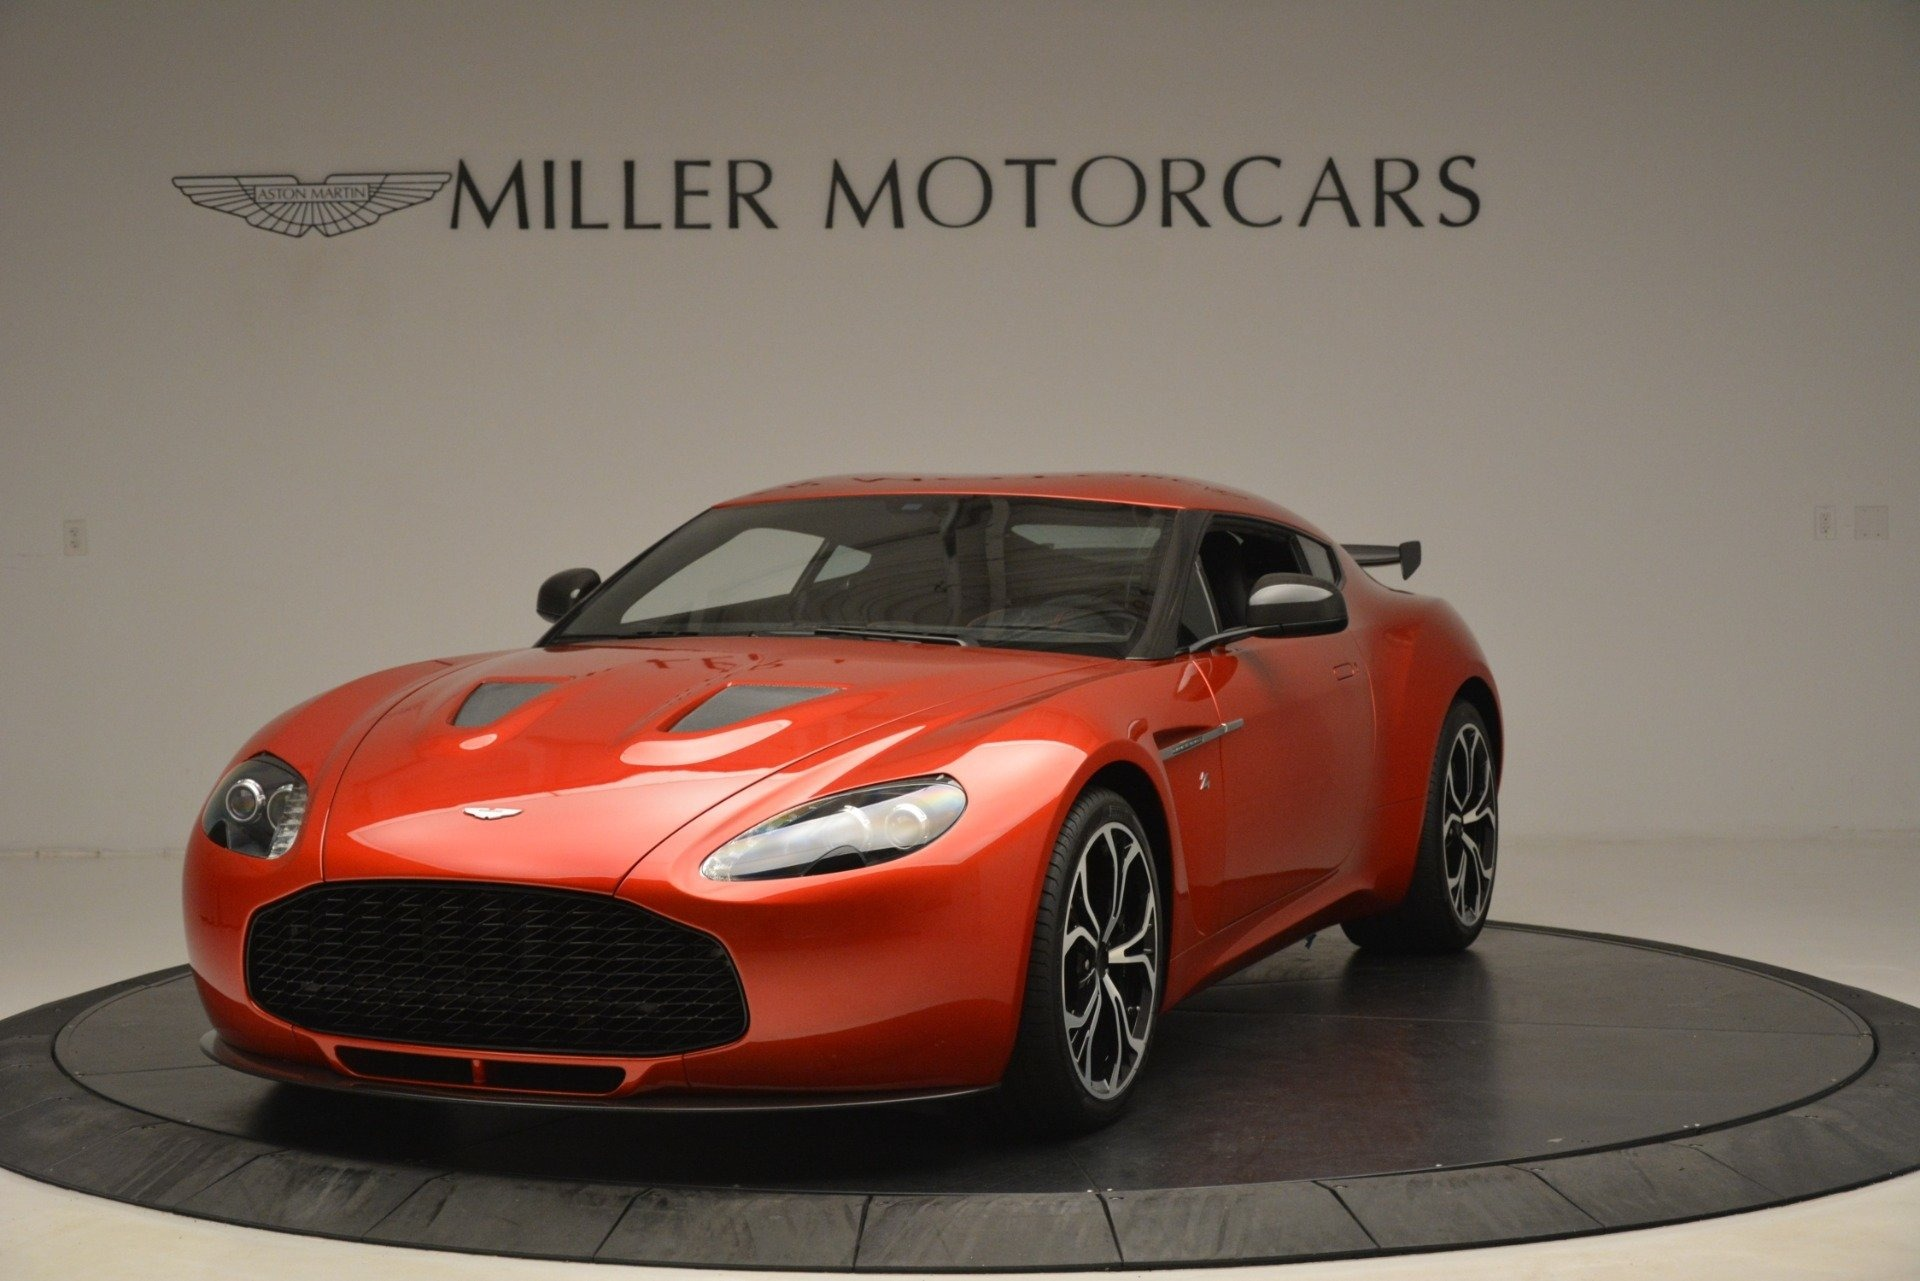 Pre Owned 2013 Aston Martin V12 Zagato Coupe For Sale 655 900 Aston Martin Of Greenwich Stock 7936c